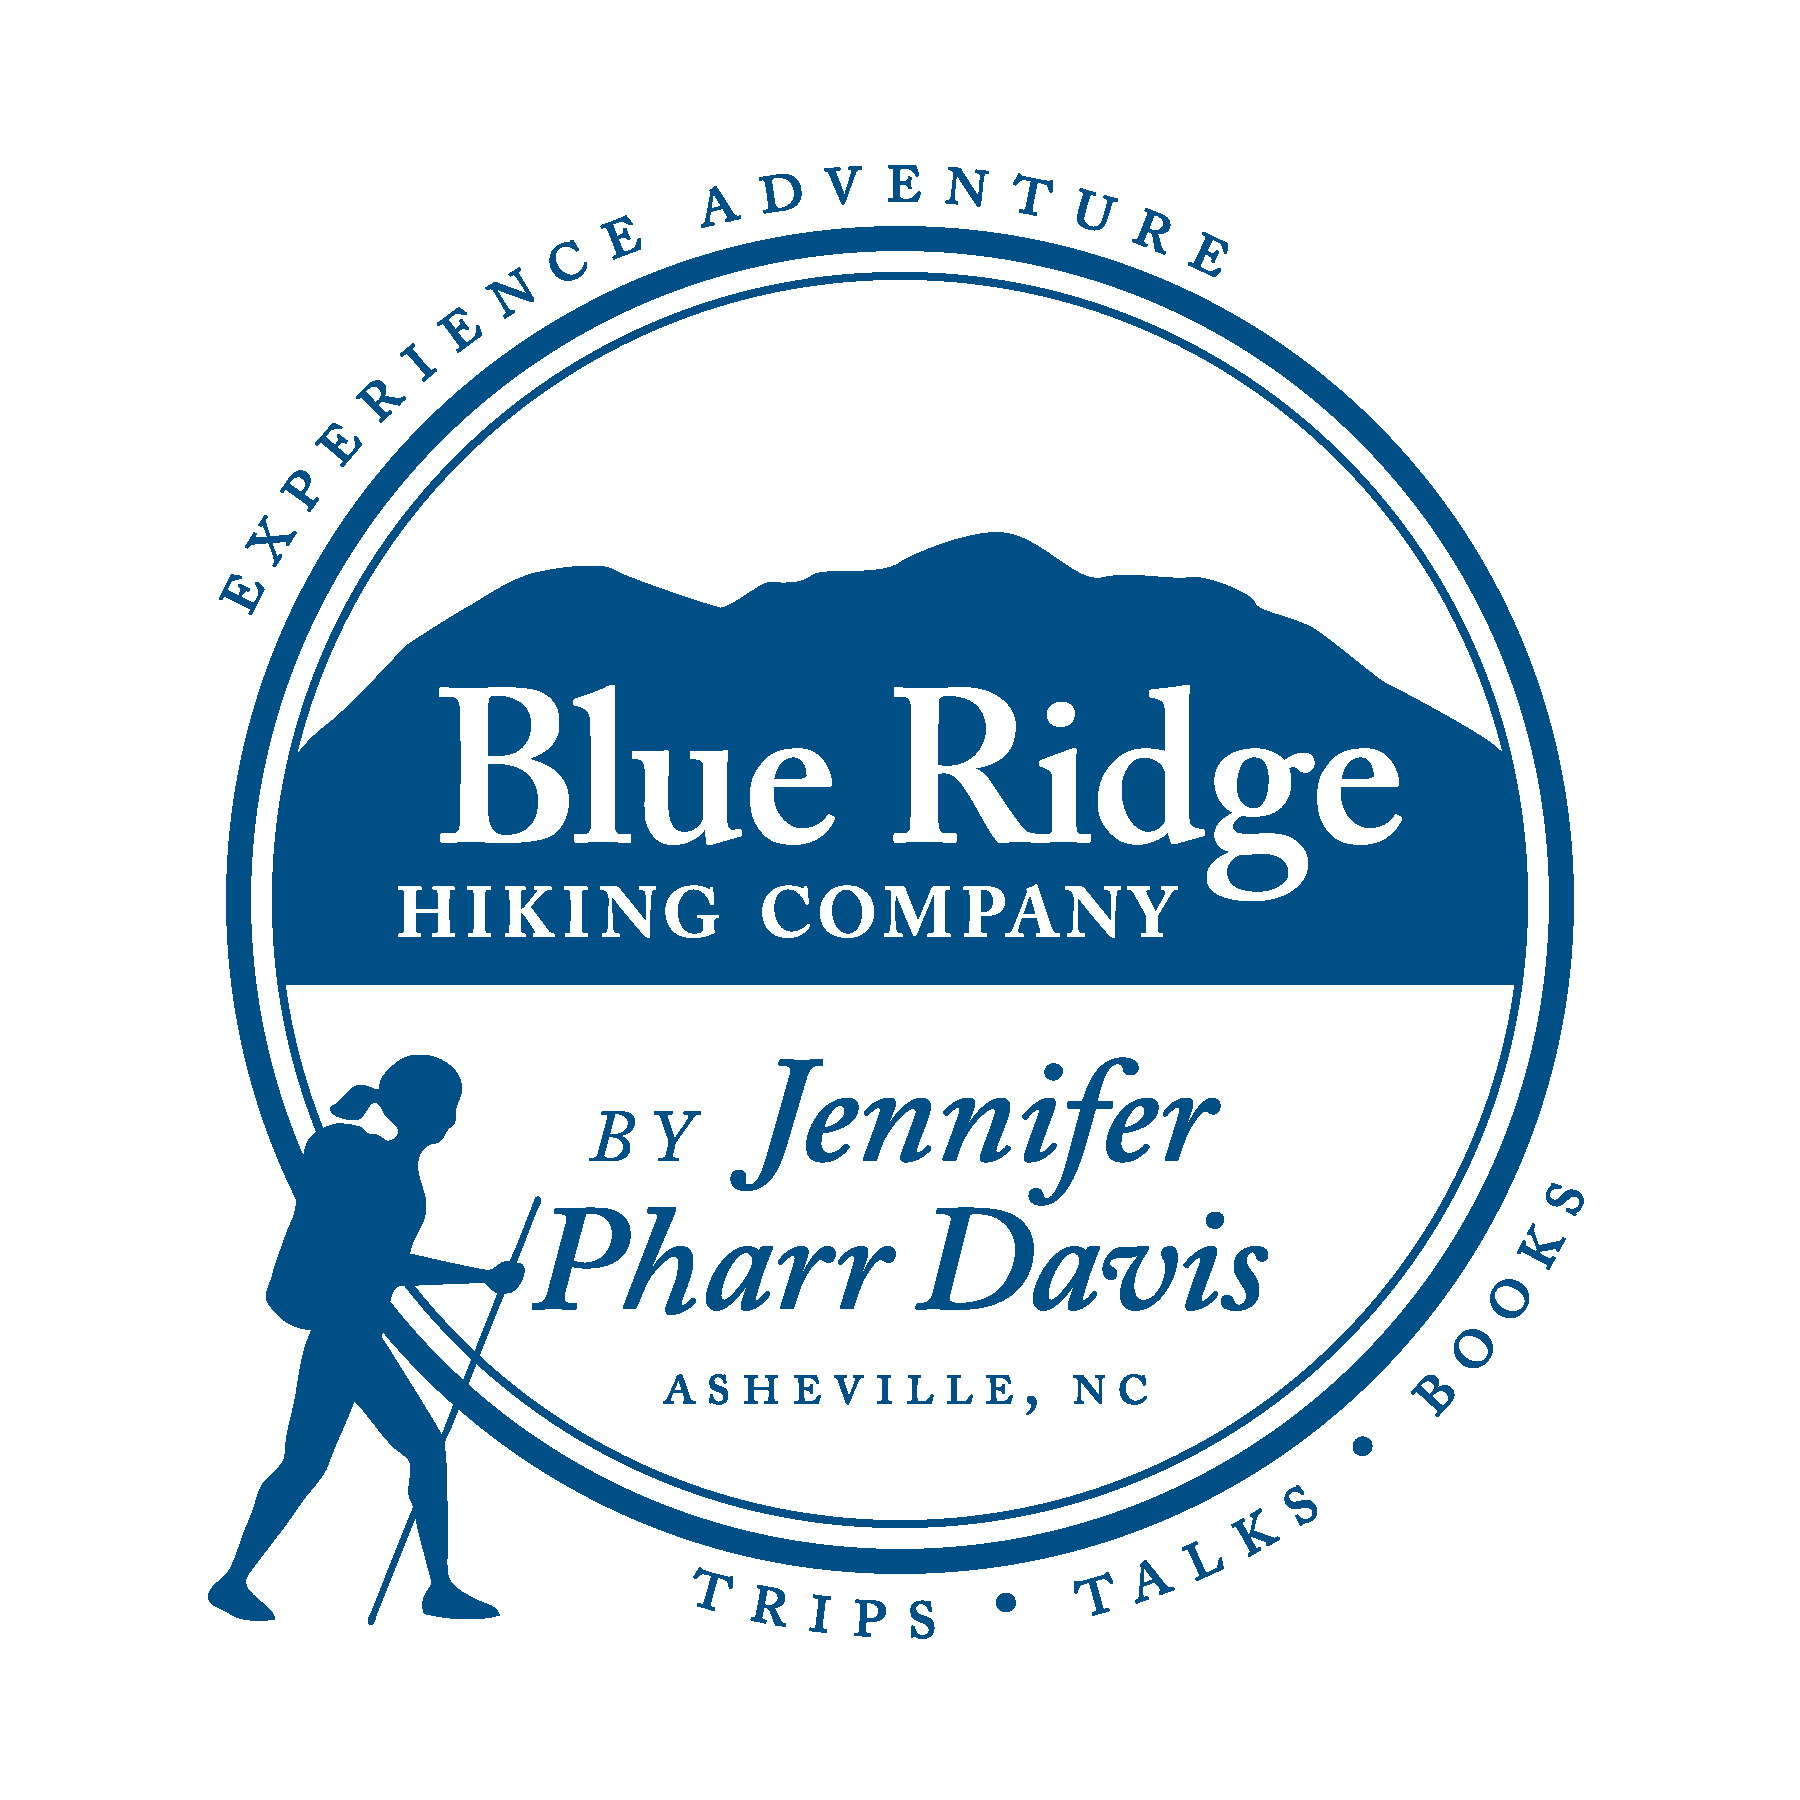 Blue Ridge Hiking Company | Asheville, NC\'s Official Travel Site